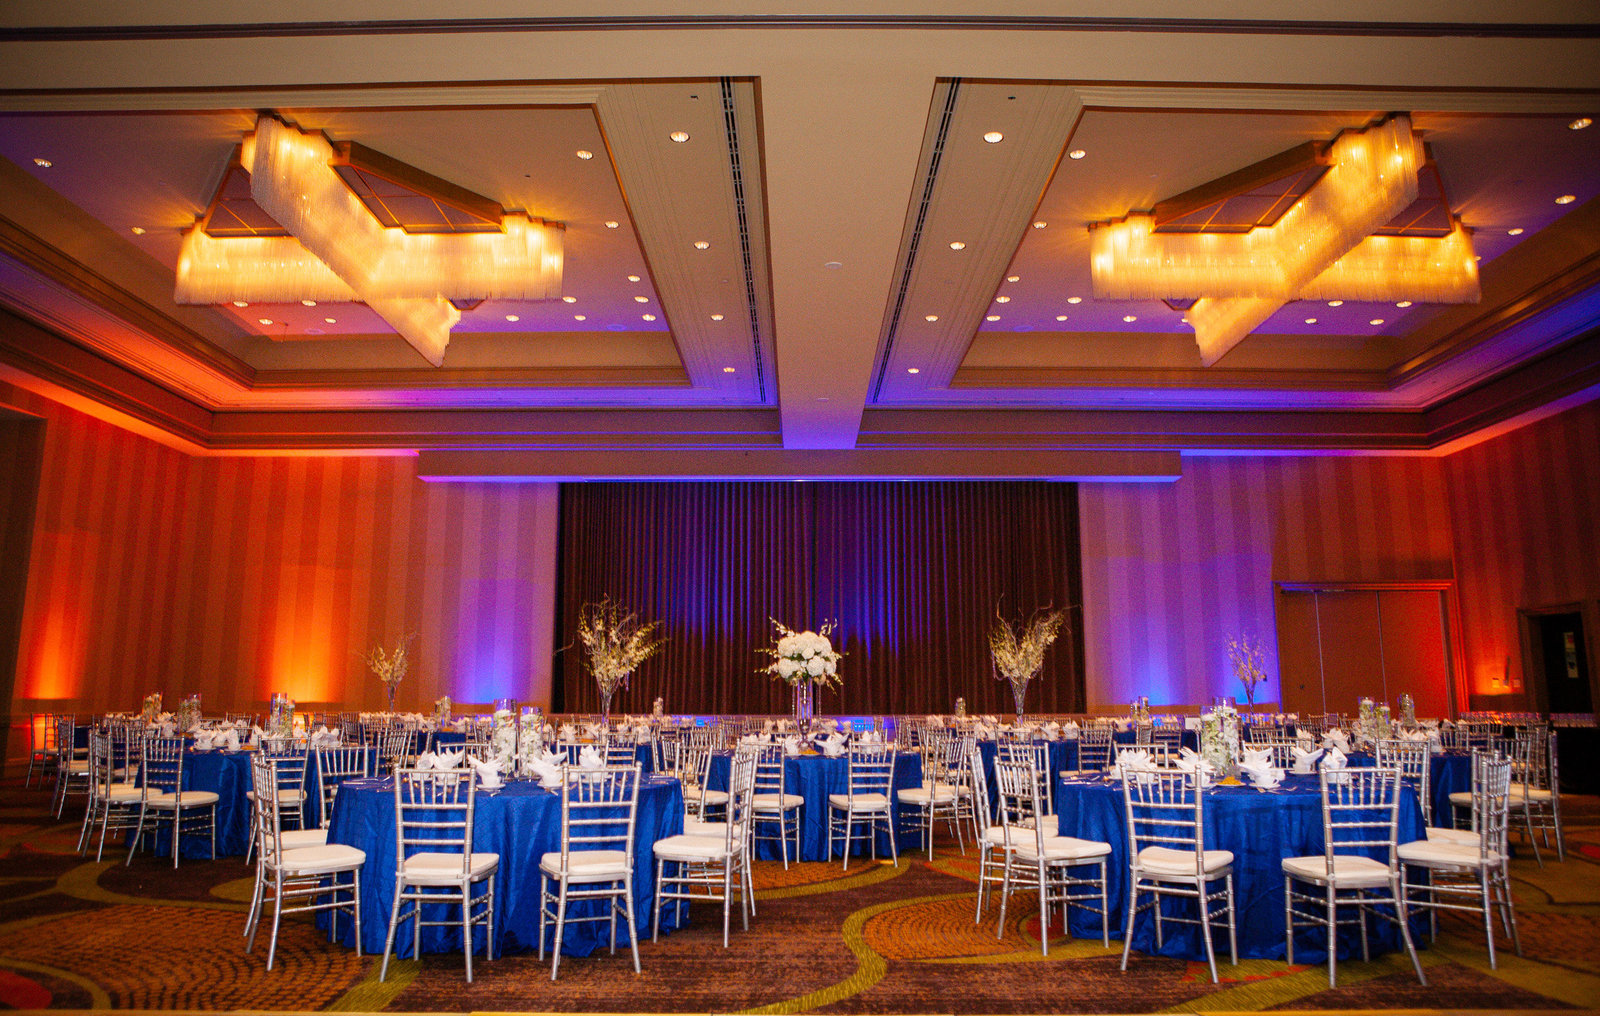 Landsdowne Resort Wedding Reception with lighting